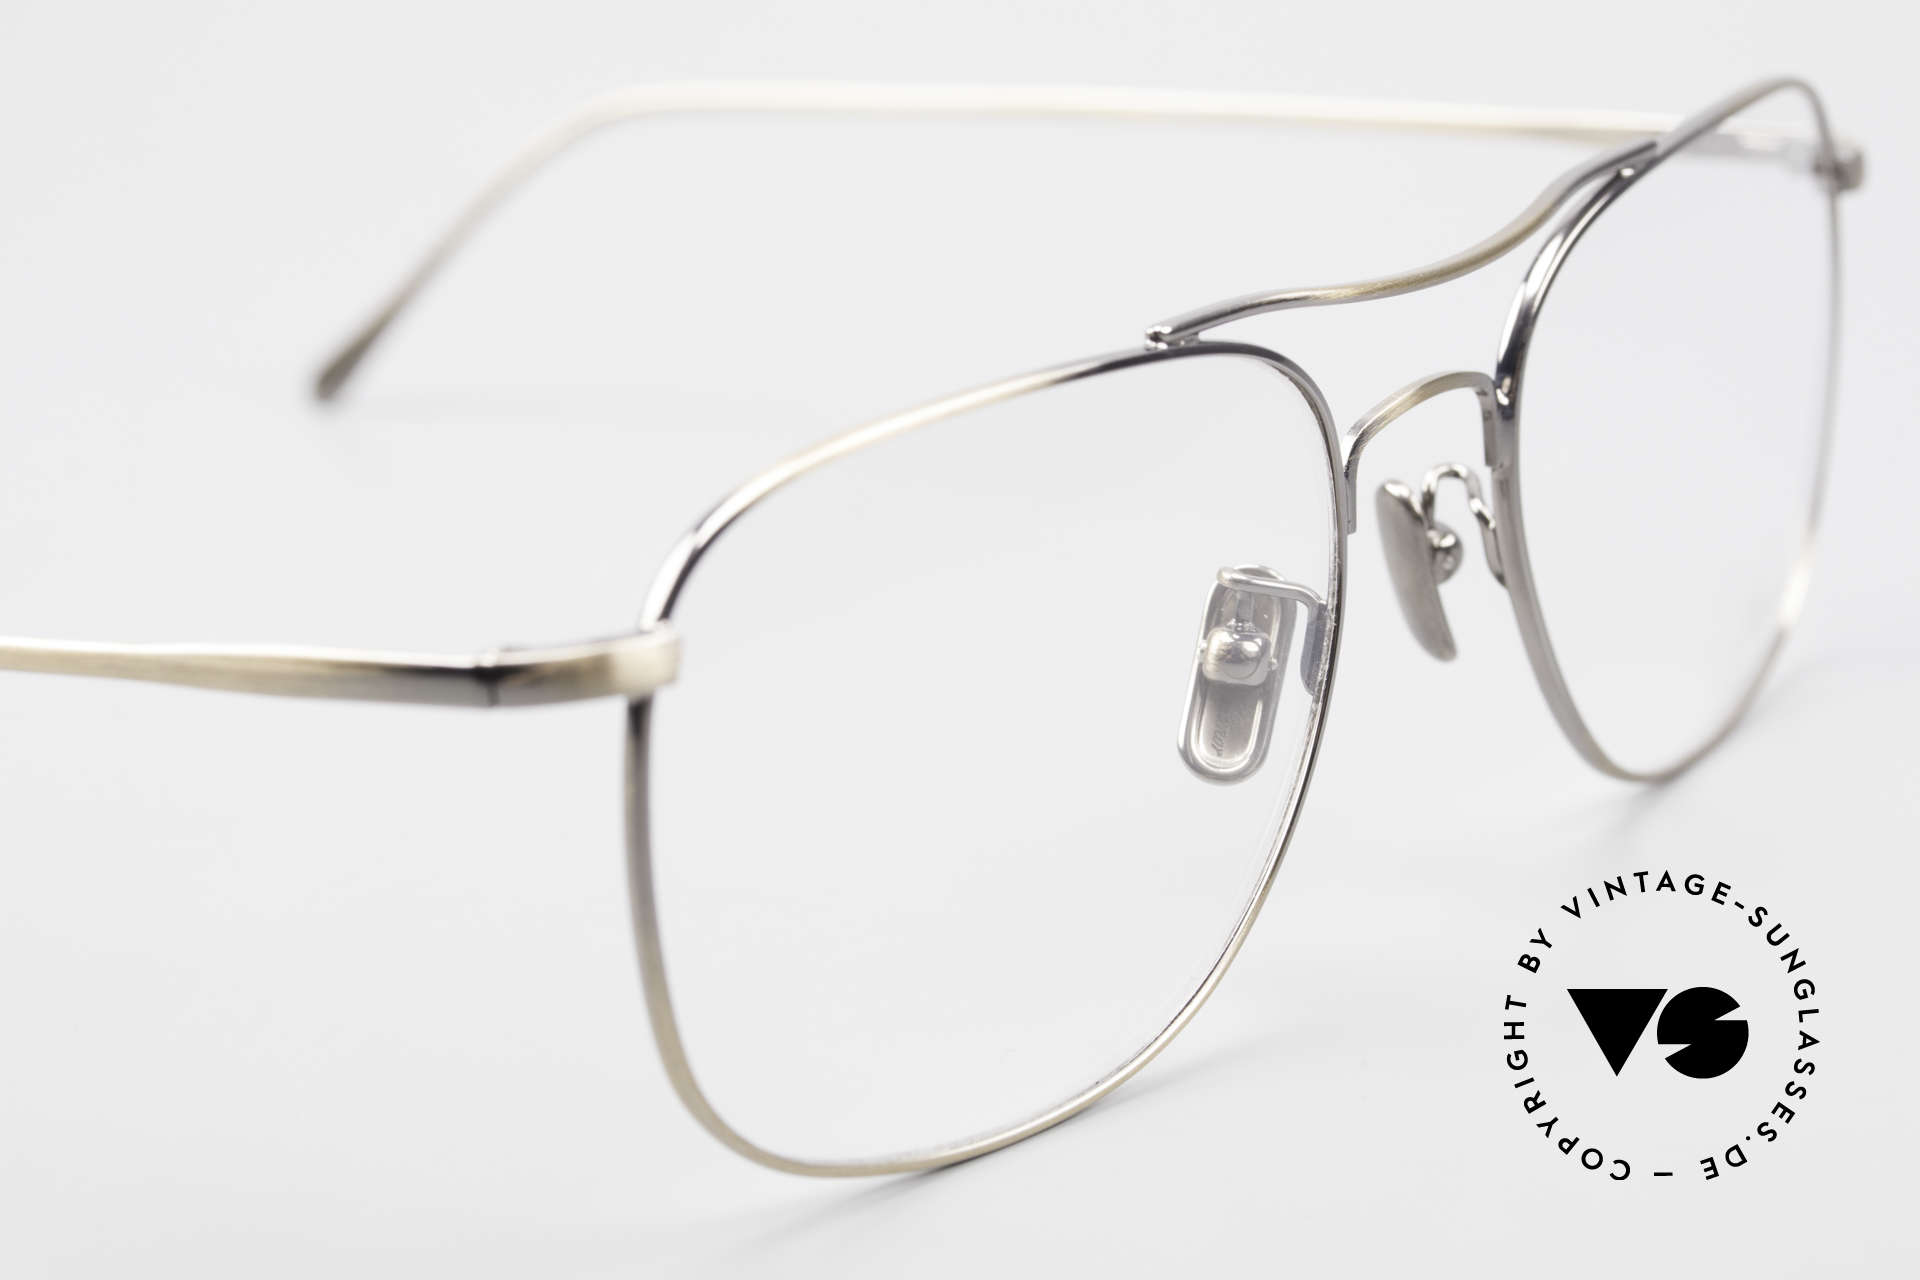 Lunor Aviator II P4 AG Classy Men's Eyeglass-Frame, thus, we decided to take it into our vintage collection, Made for Men